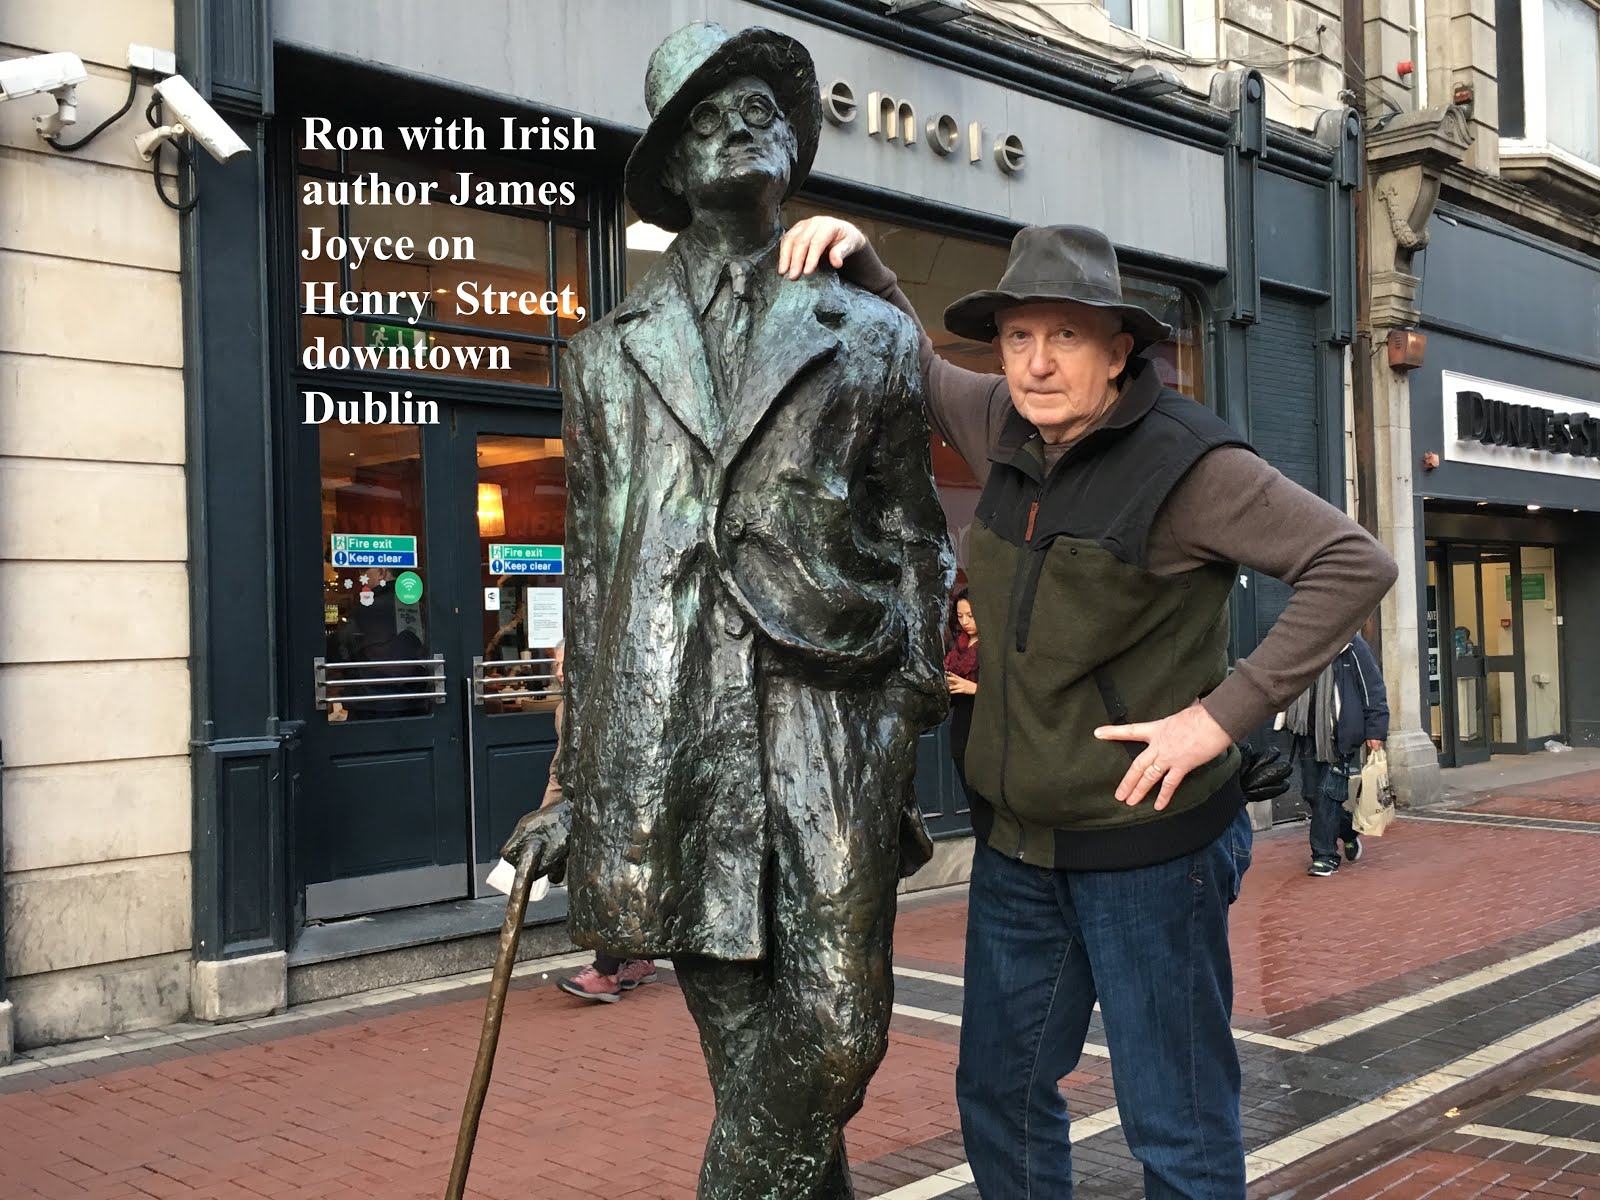 Ron with his friend author James Joyce in downtown Dublin.